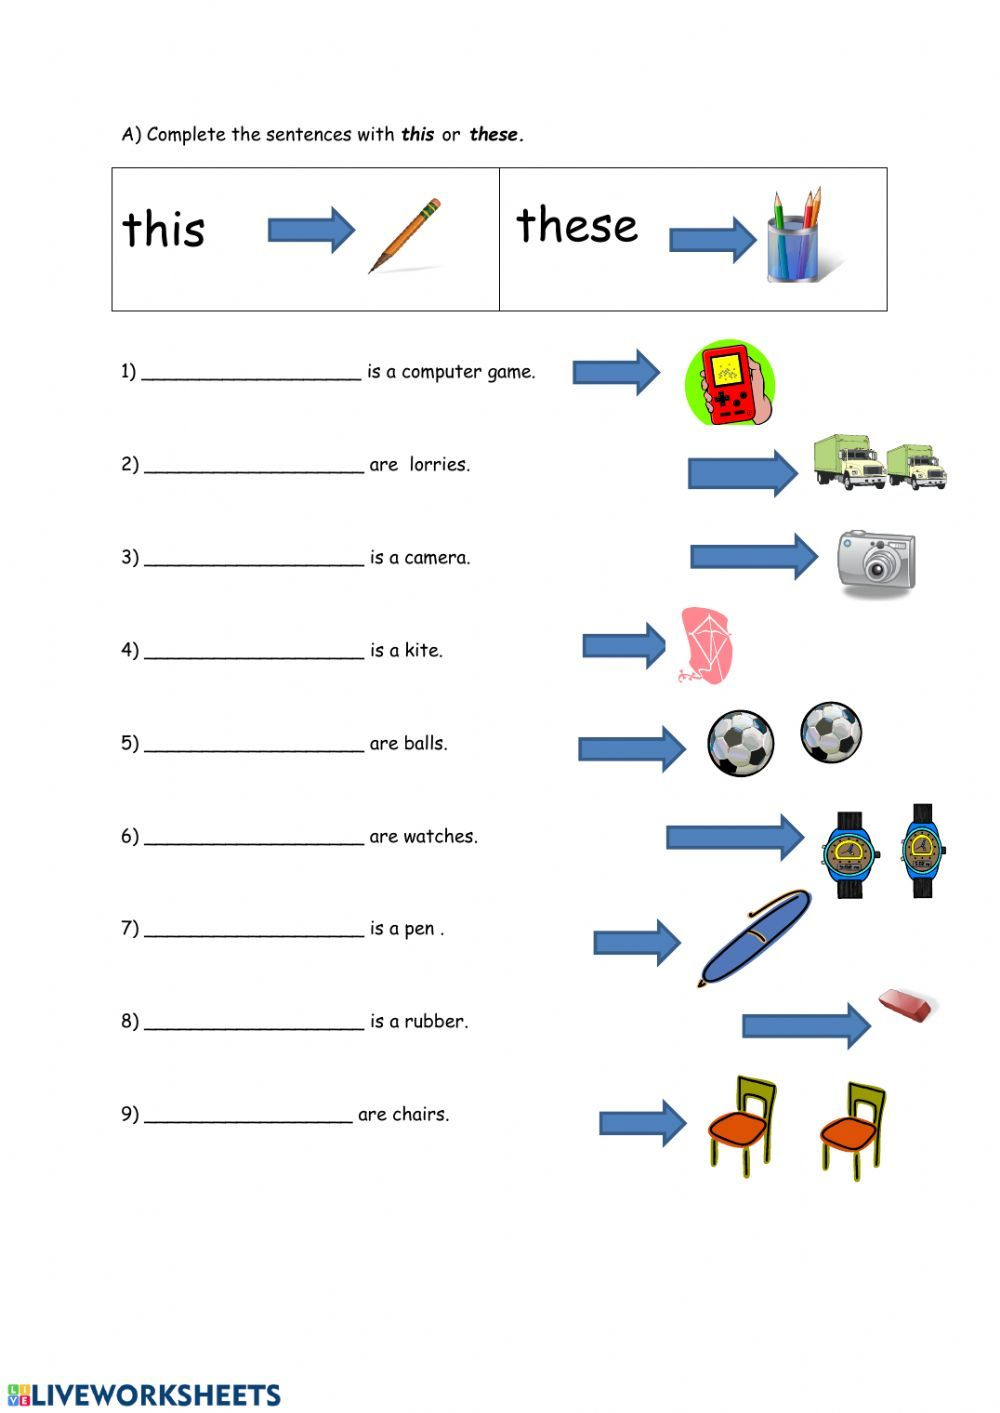 medium resolution of https://www.contohkumpulan.com/demonstratives-interactive-and-downloadable-worksheet-you-can-do-the-exercises-online-or-down/